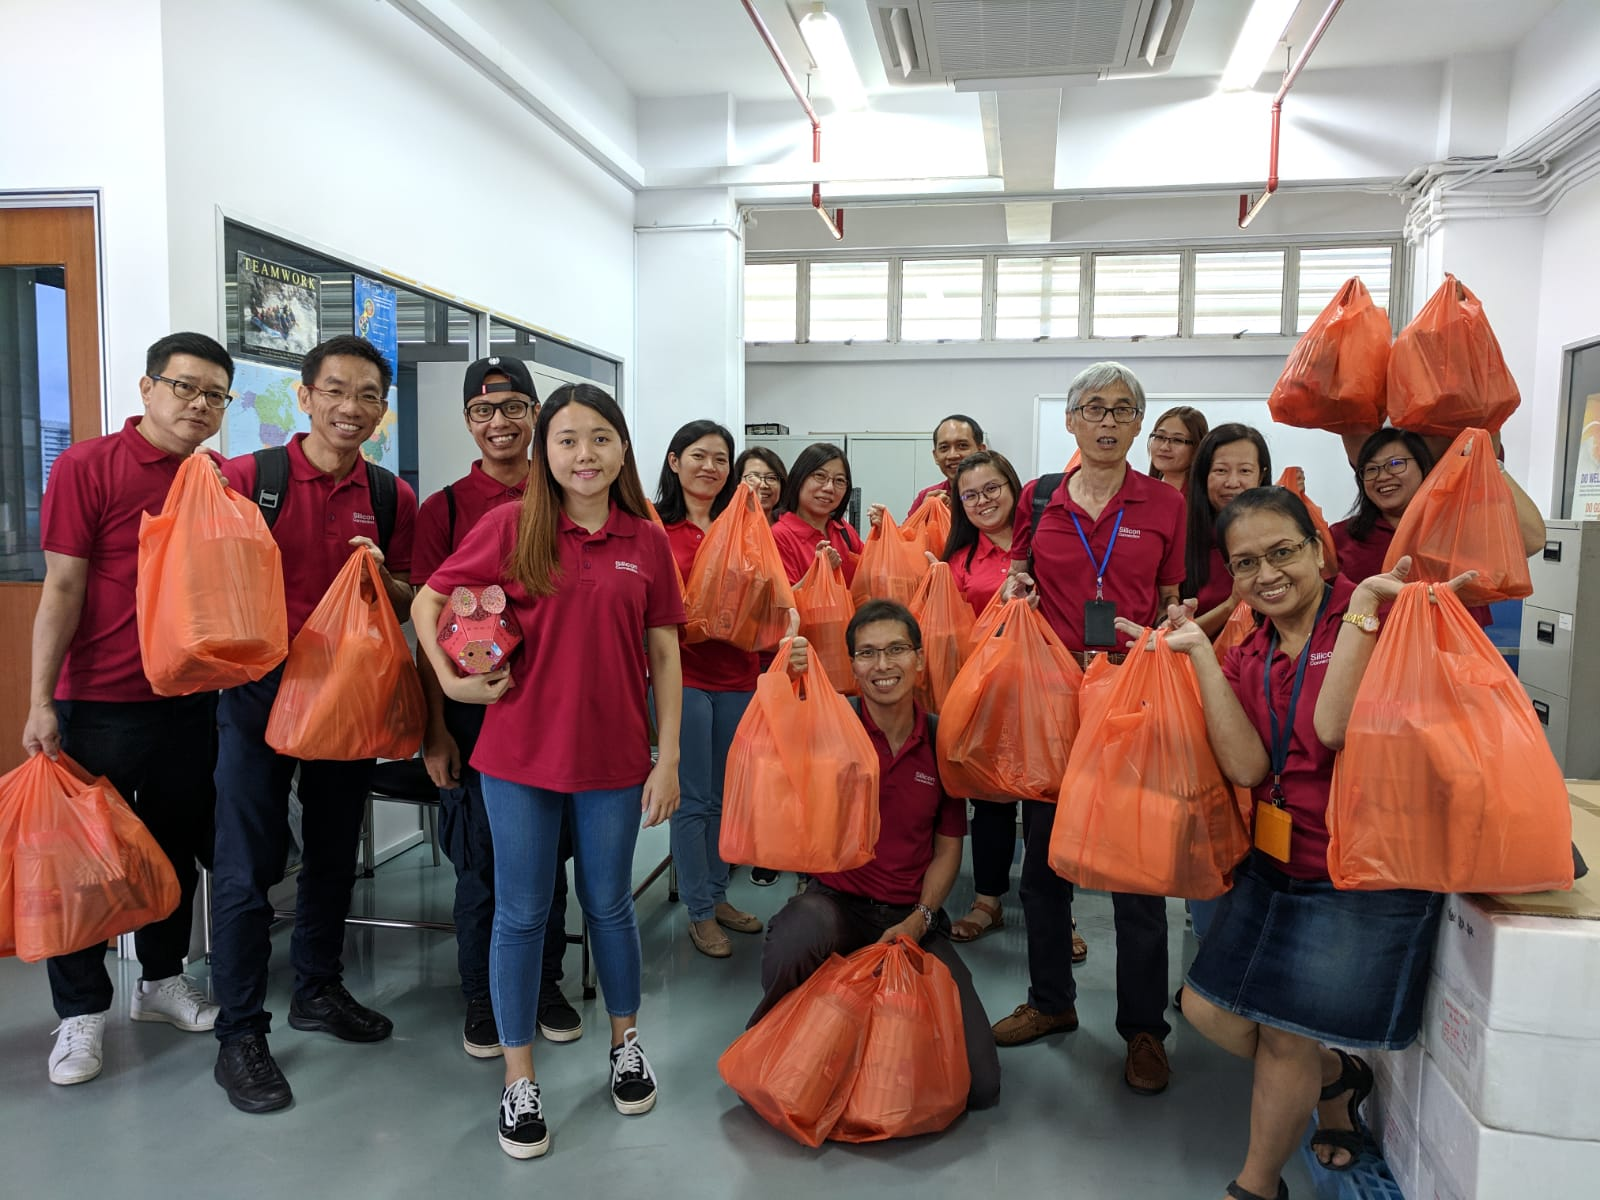 Corporate Social Responsibility - Gifting at Bendemeer